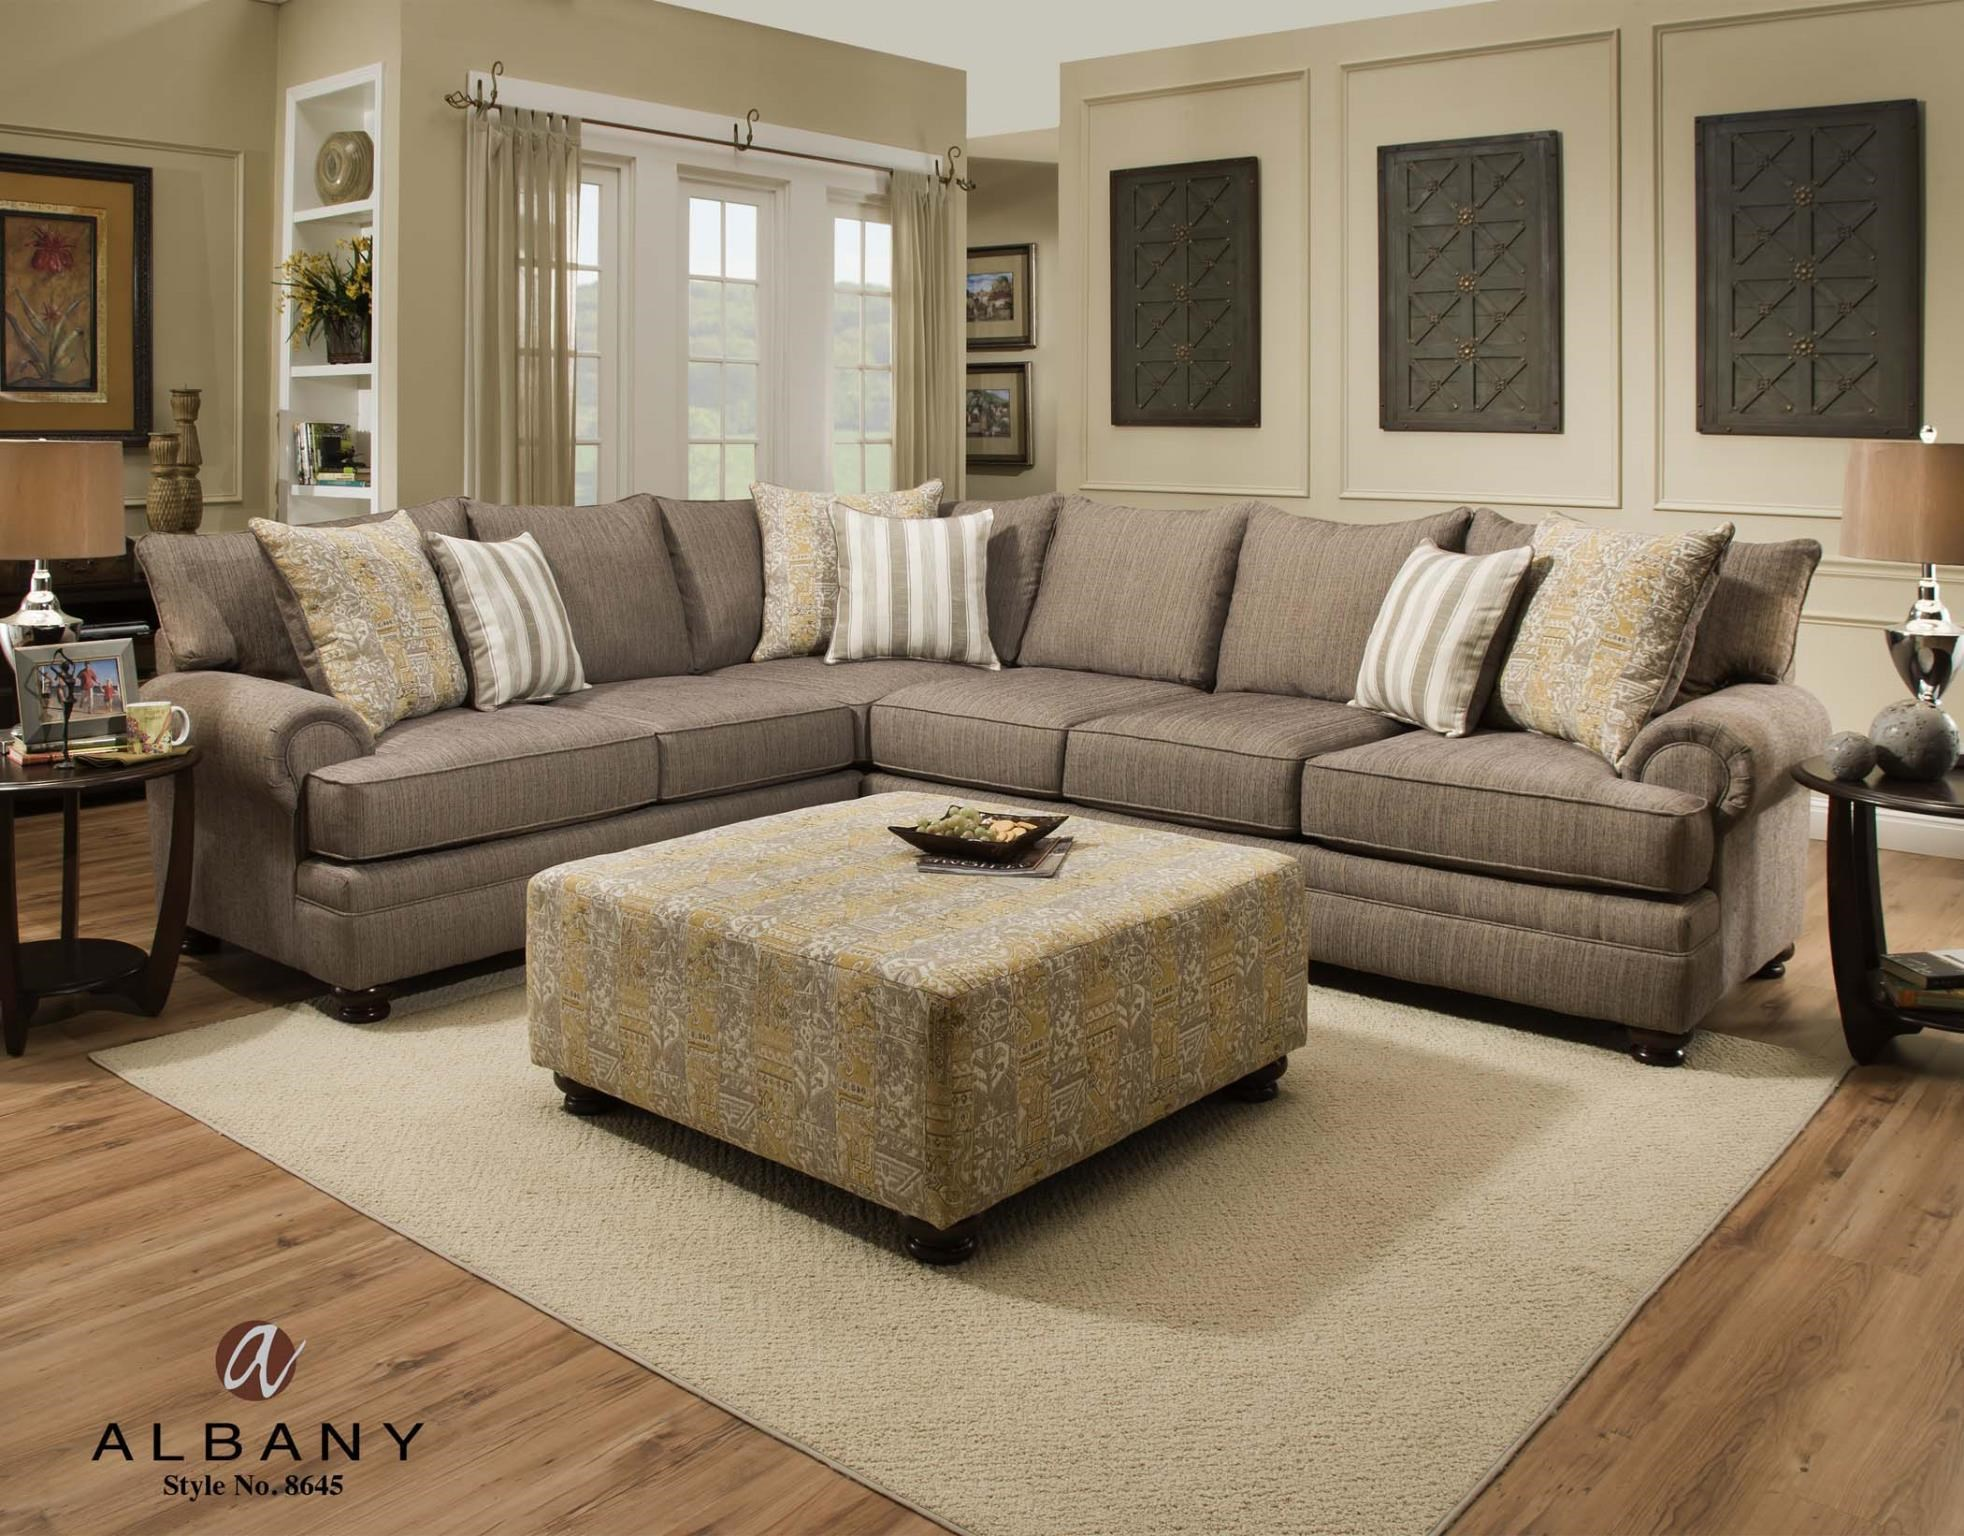 Exceptionnel Albany 8645Transitional Sectional